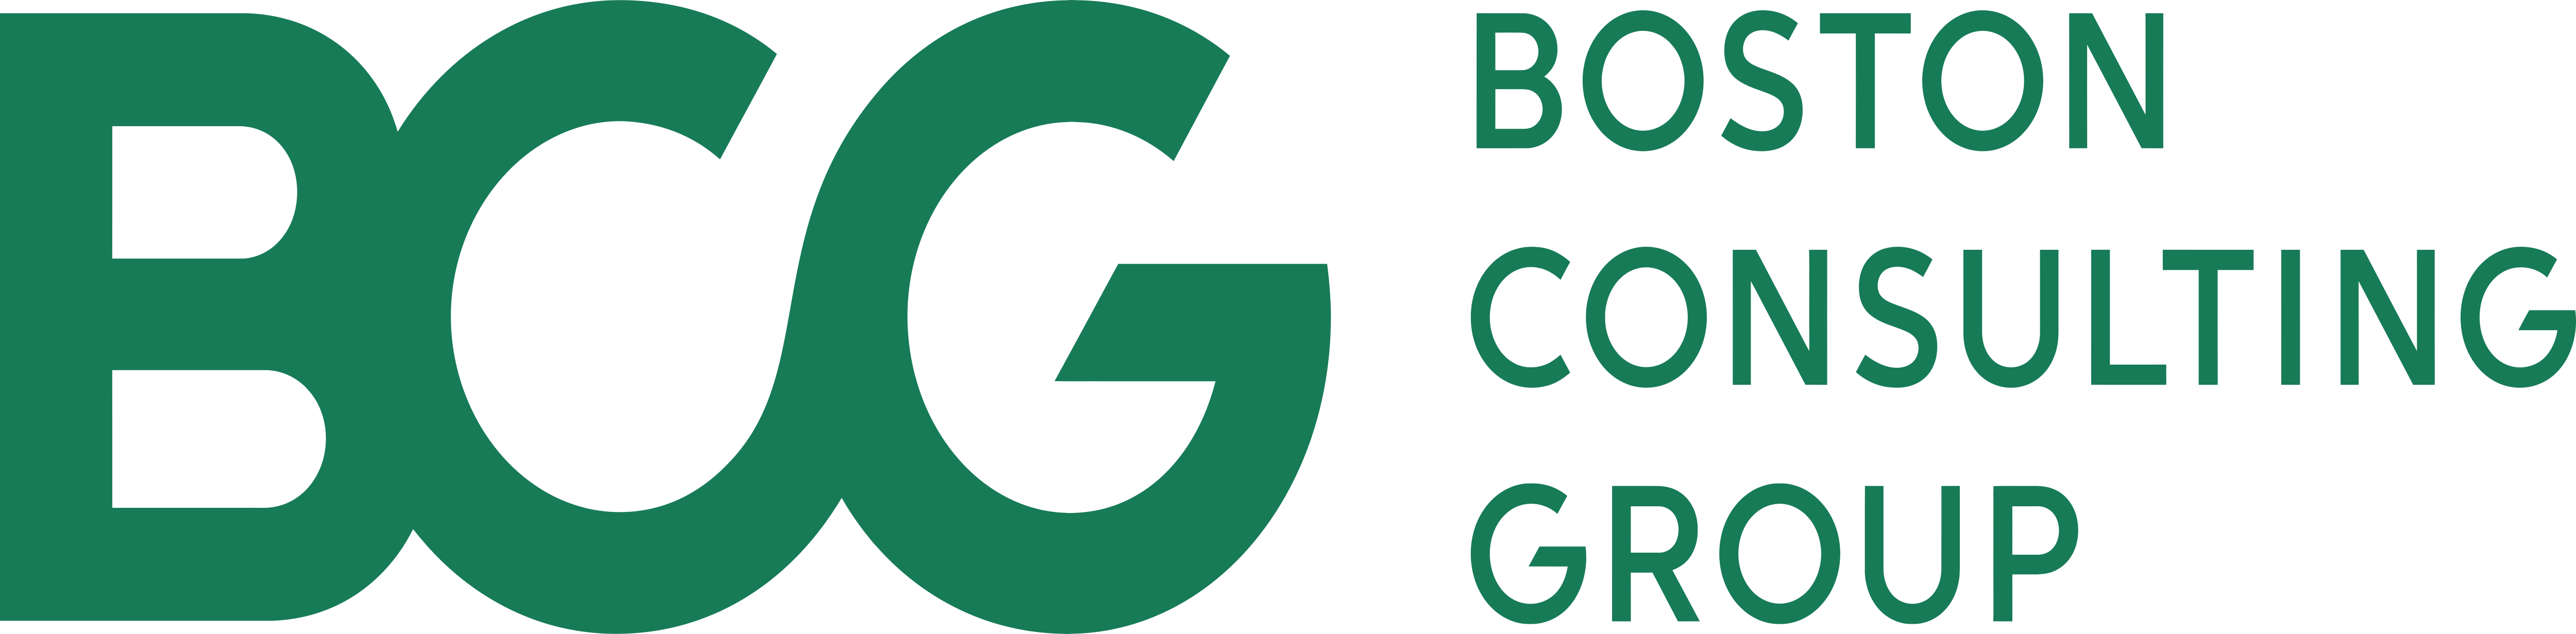 The_Boston_Consulting_Group_Logo_full